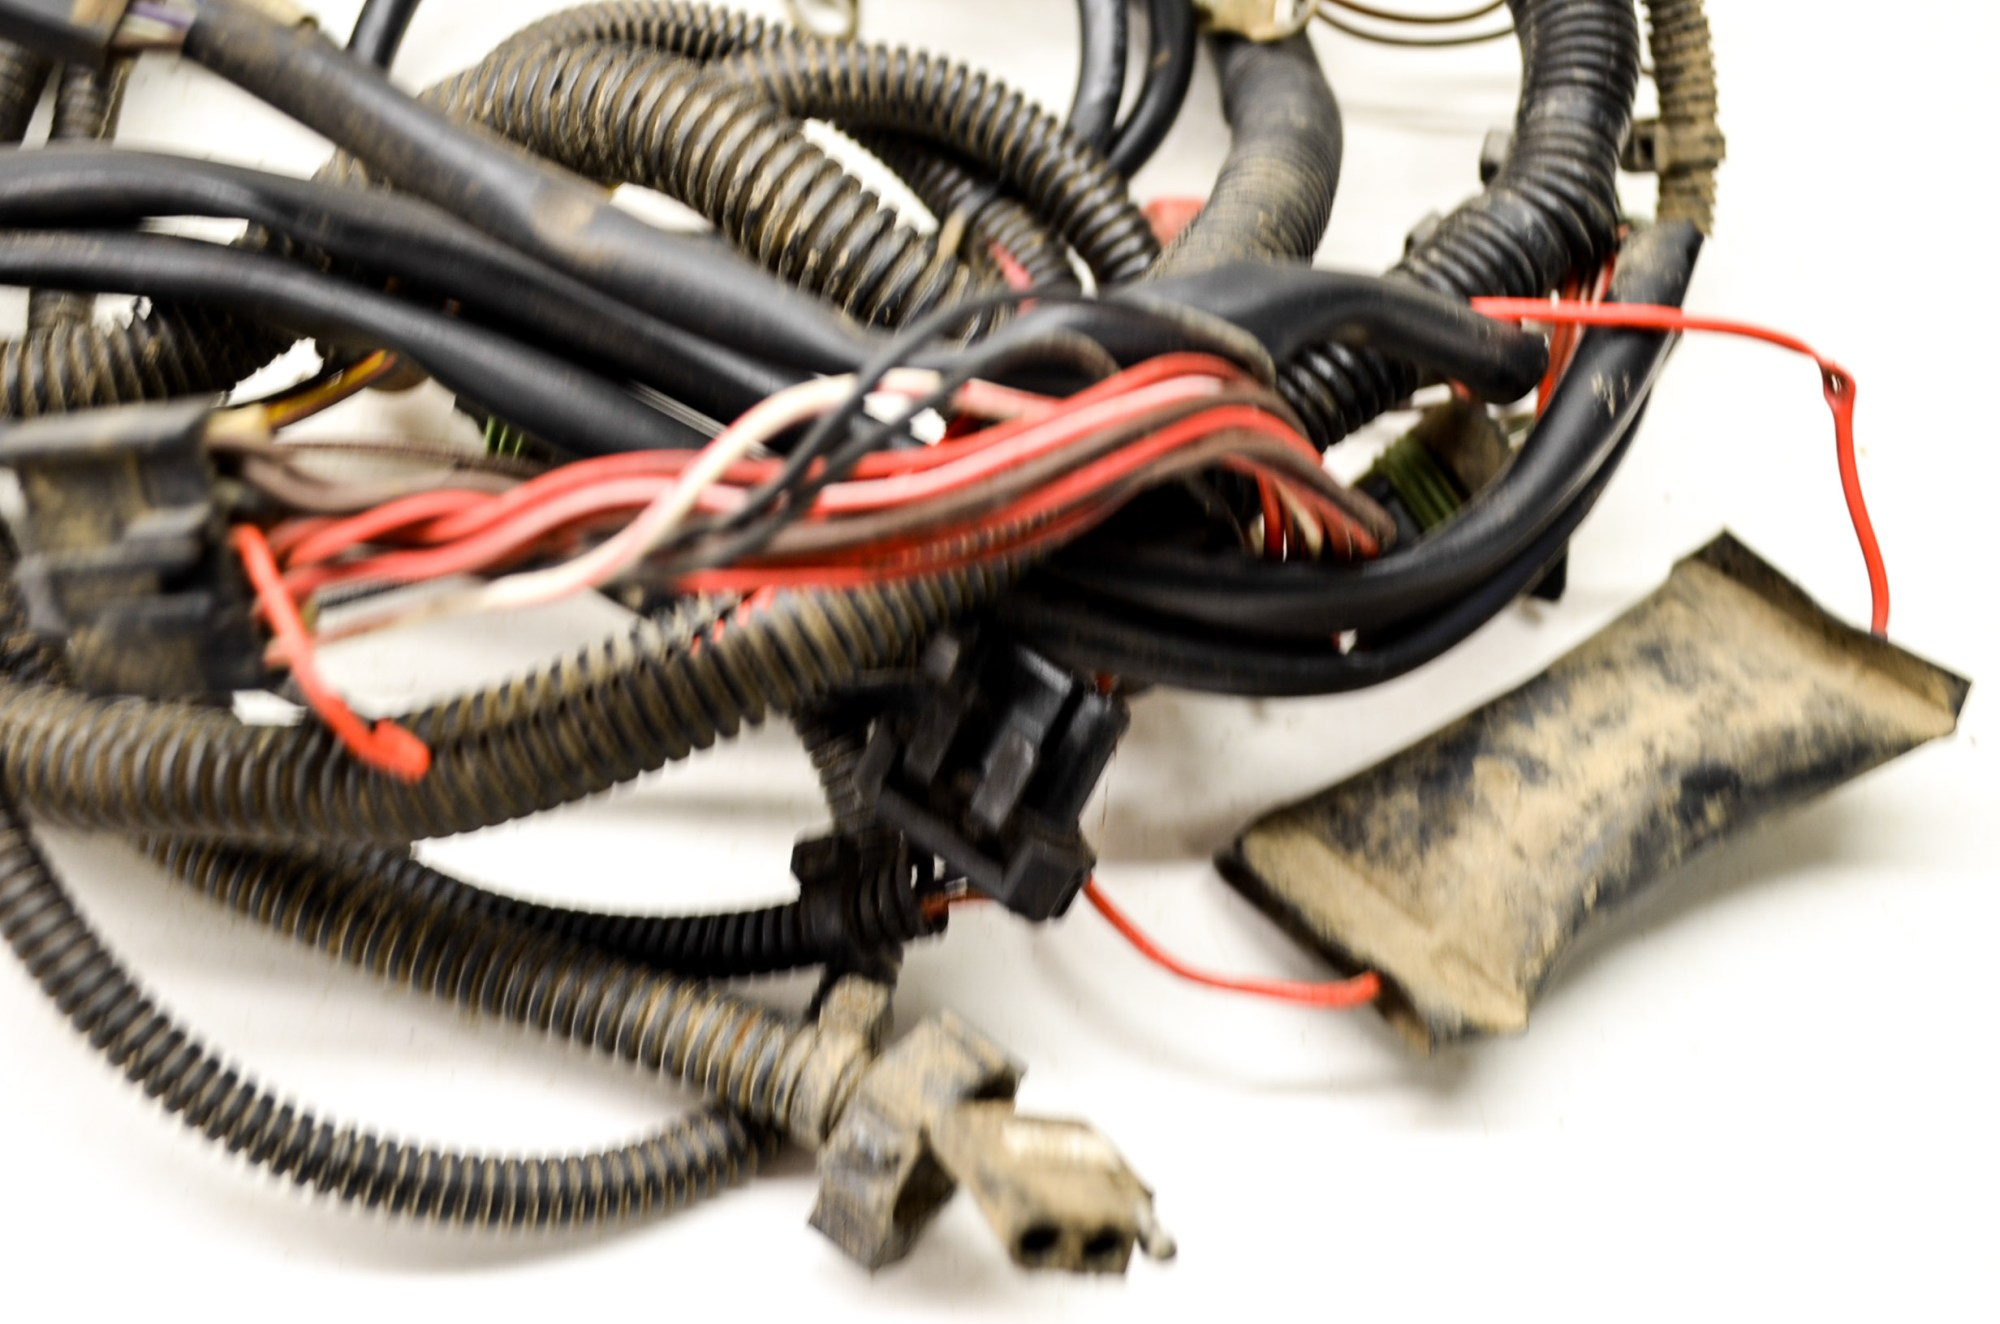 hight resolution of 03 polaris trail boss 330 2x4 wire harness electrical wiring